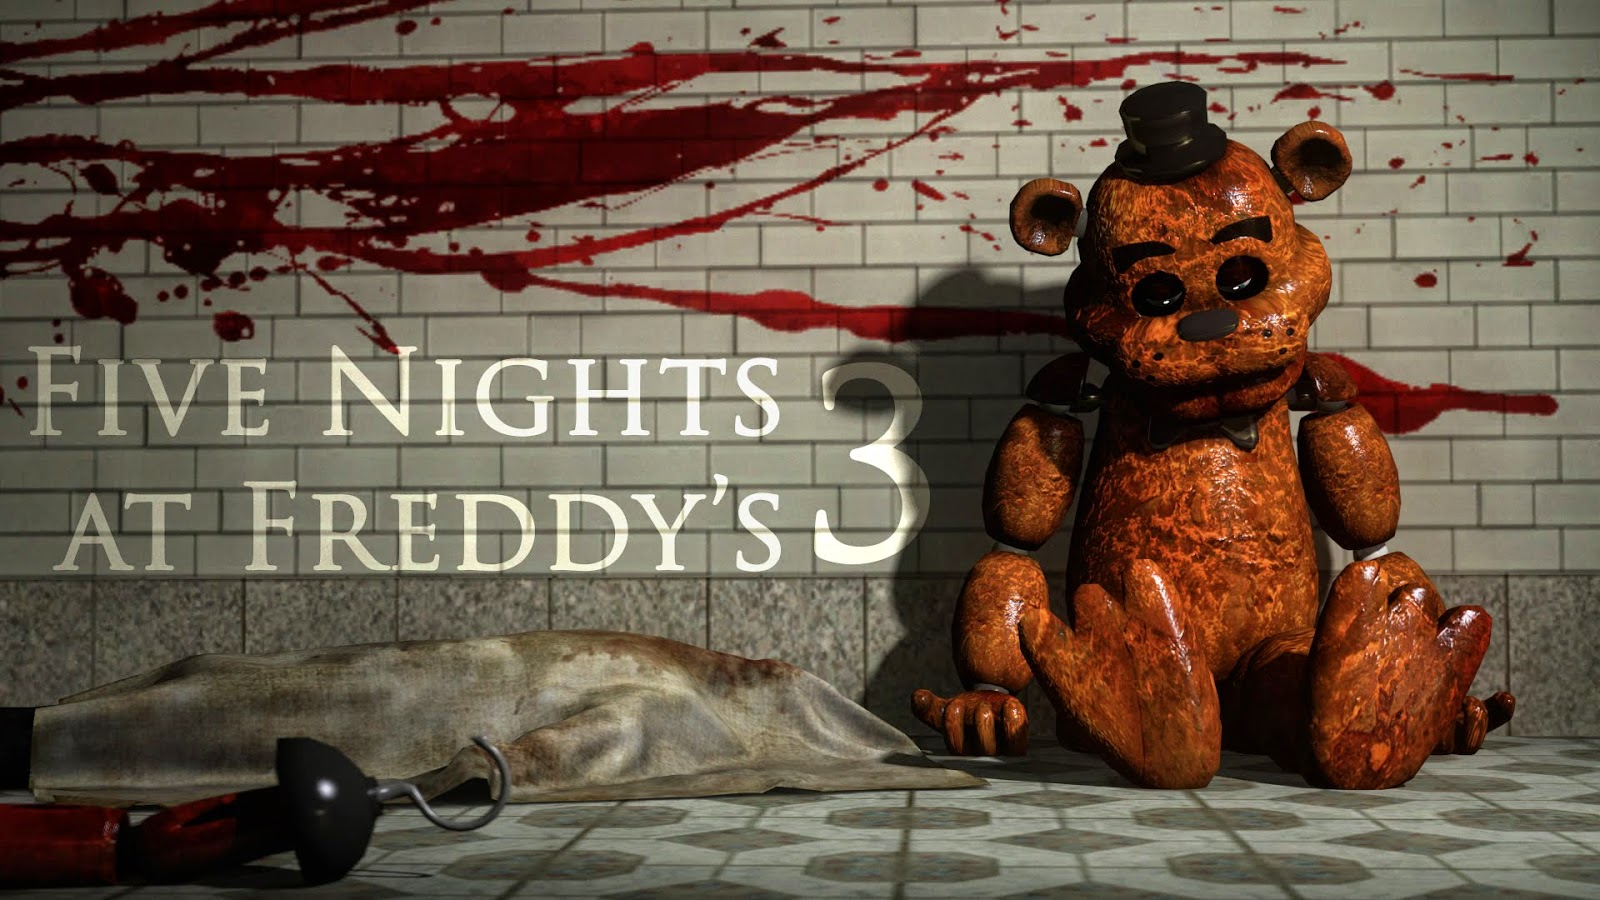 Five Nights at Freddy's 3 v1.07 APK Android